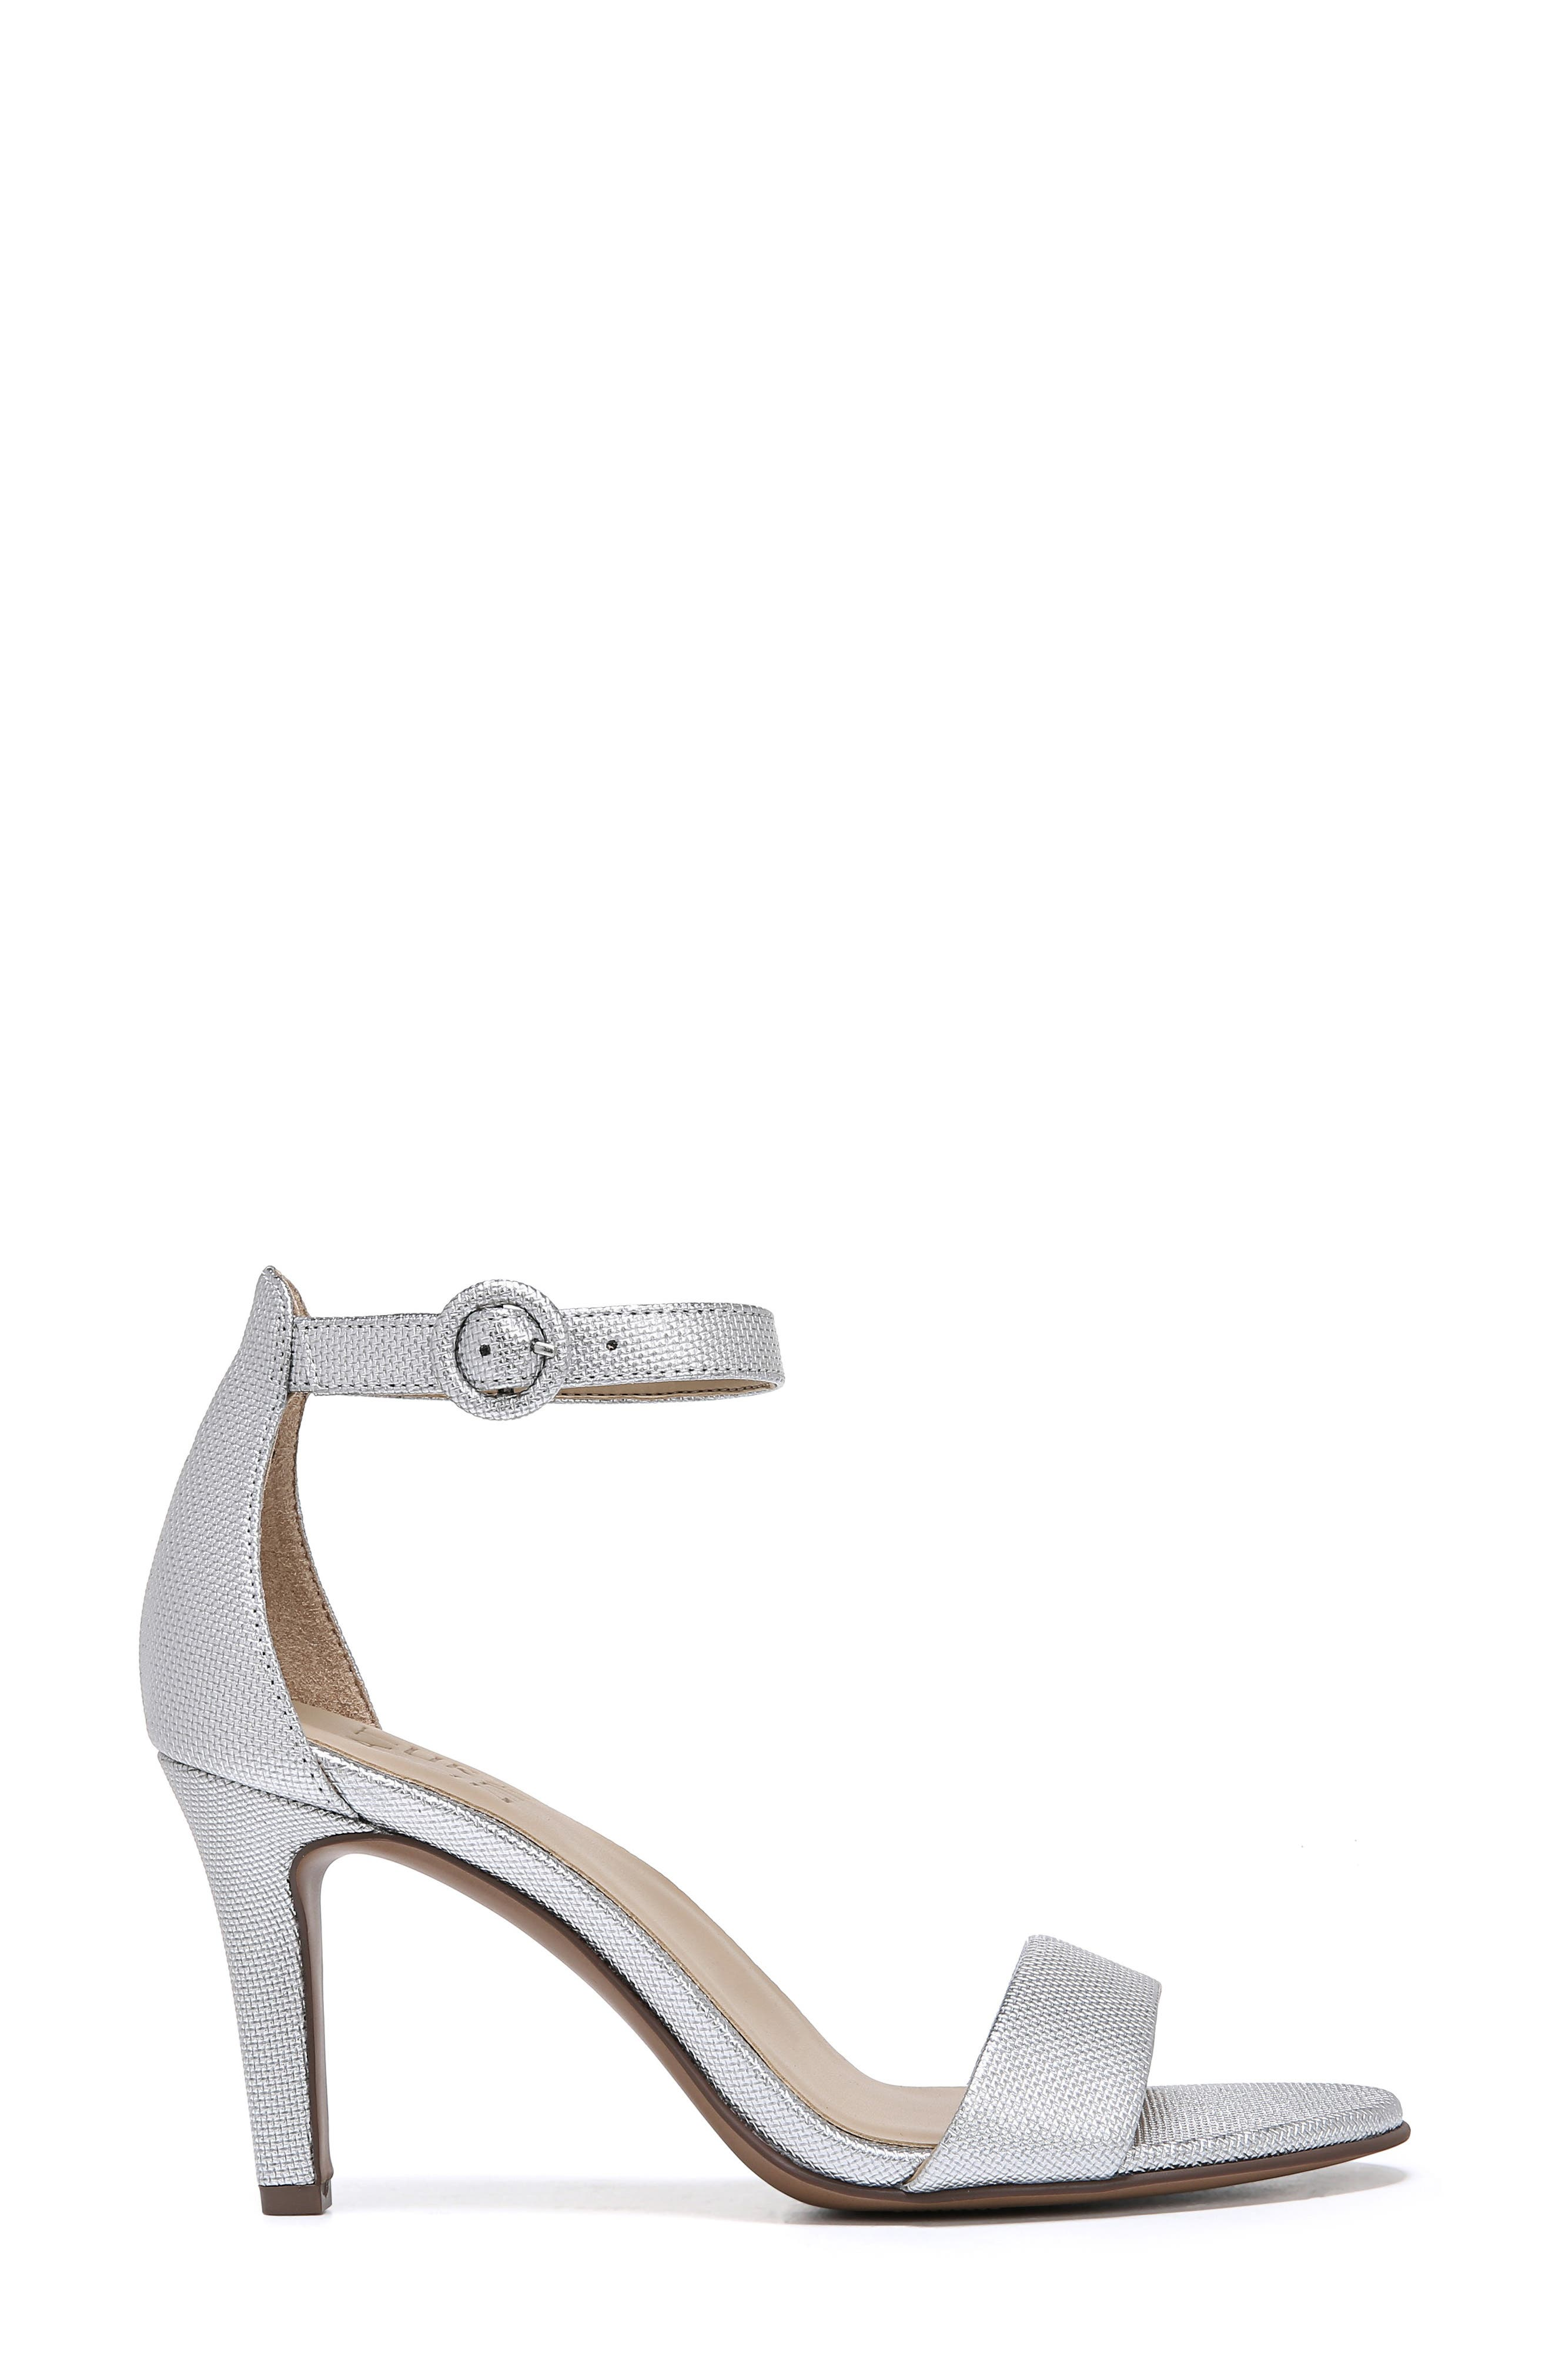 Kinsley Sandal,                             Alternate thumbnail 3, color,                             SILVER